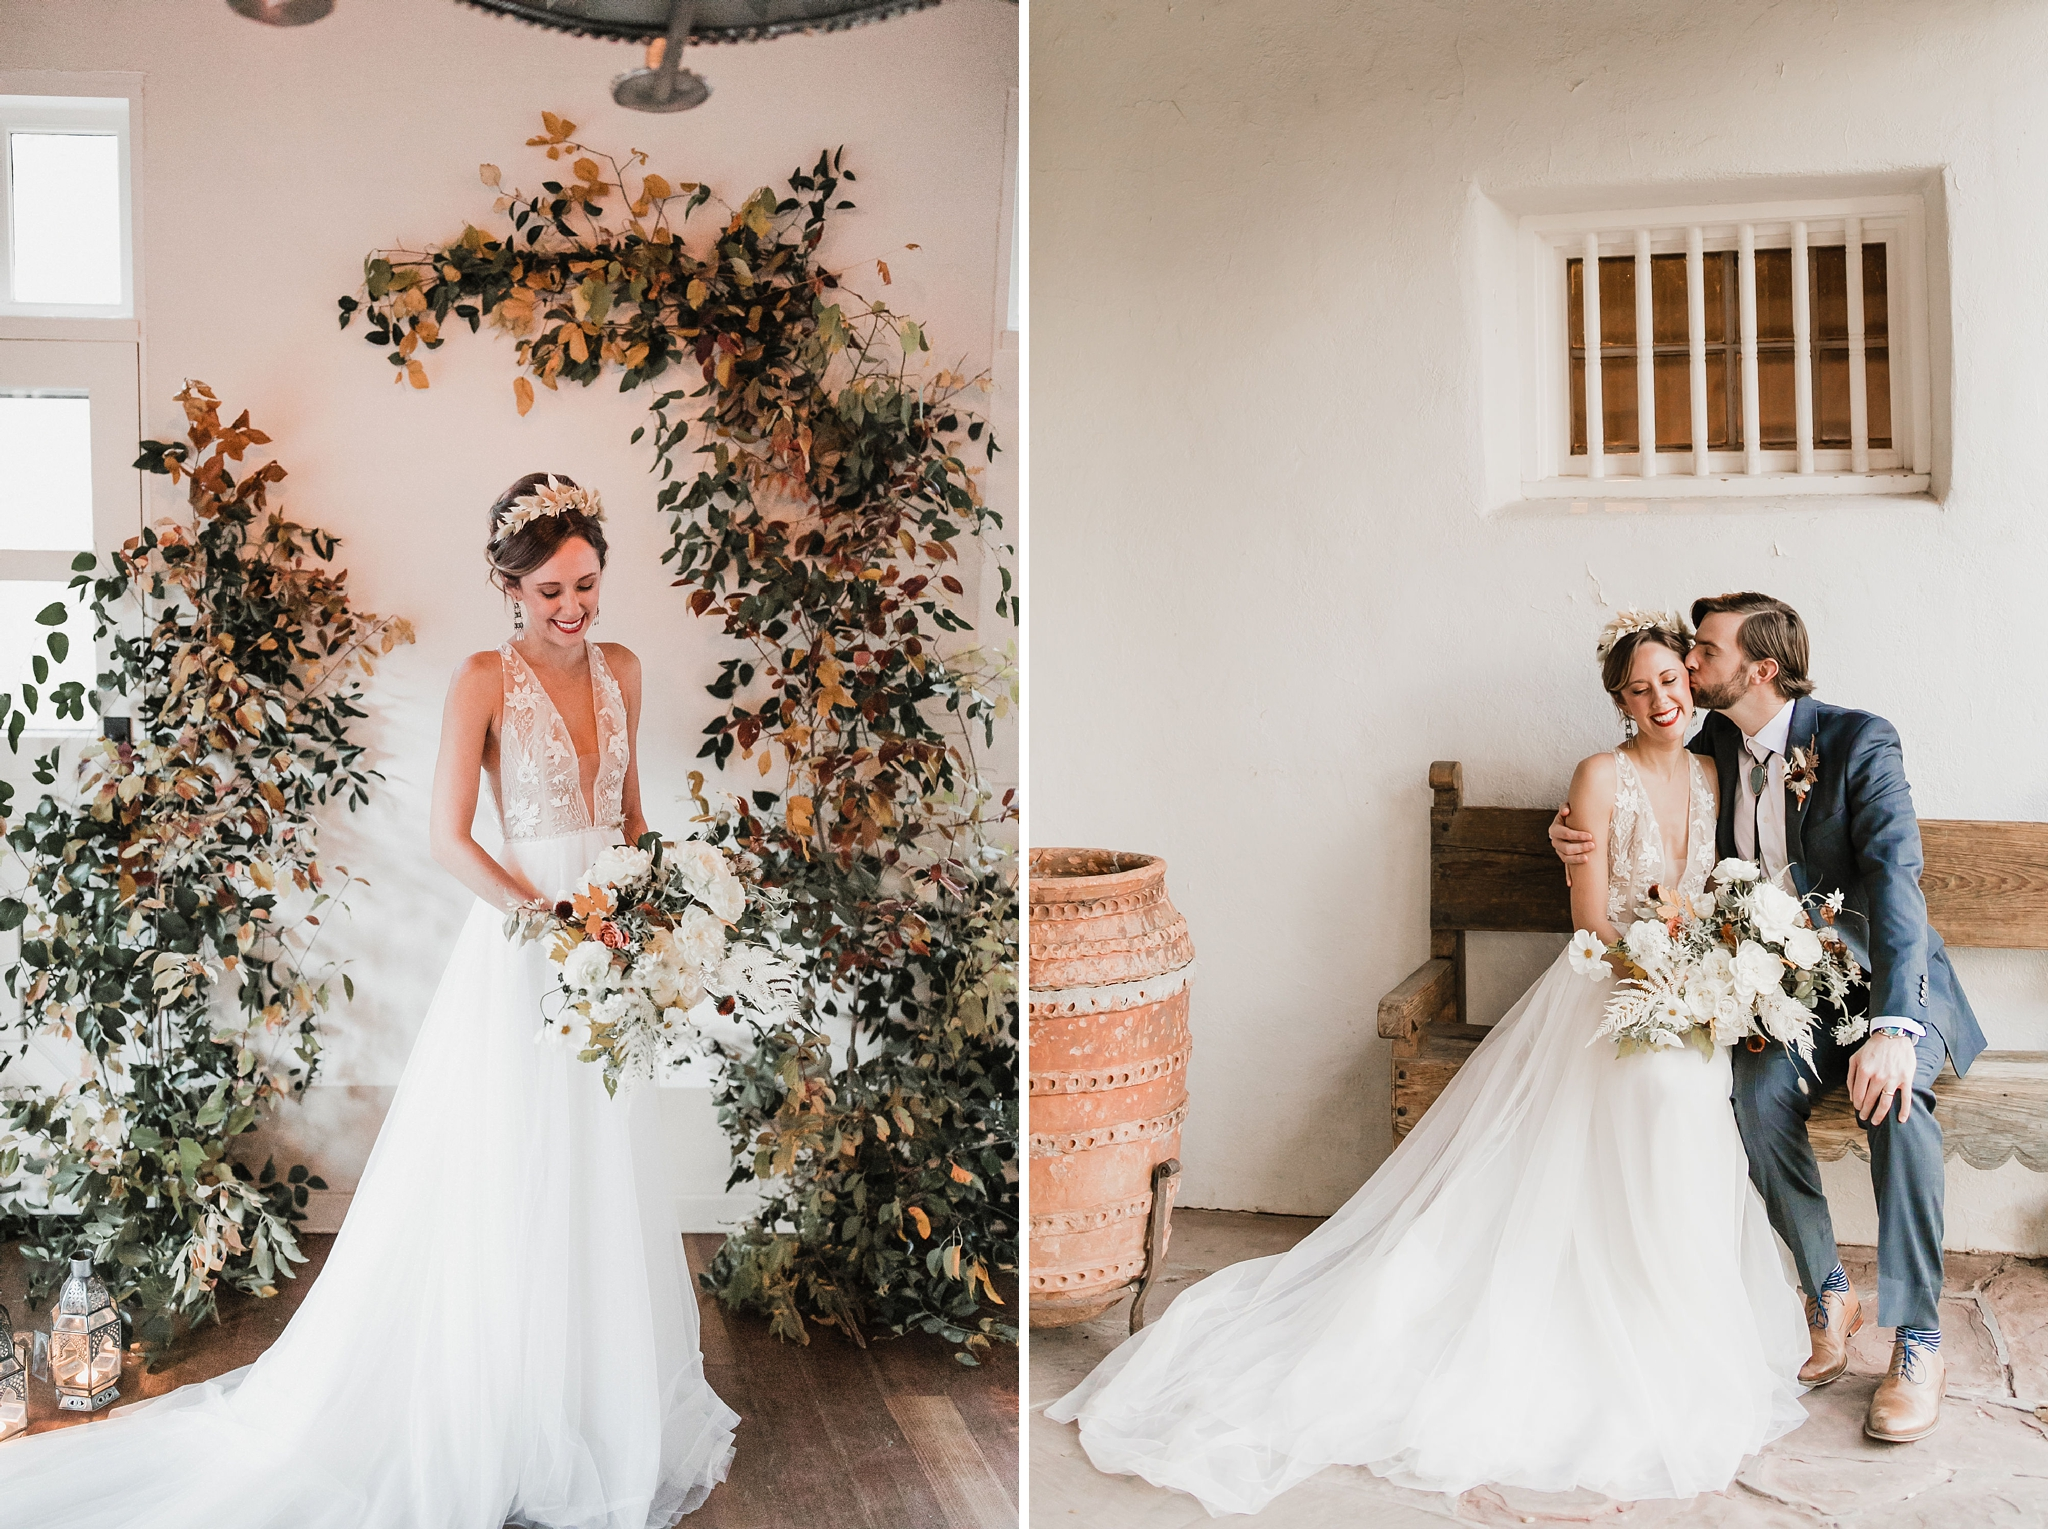 Alicia+lucia+photography+-+albuquerque+wedding+photographer+-+santa+fe+wedding+photography+-+new+mexico+wedding+photographer+-+new+mexico+wedding+-+wedding+gowns+-+bridal+gowns+-+a+line+wedding+gown_0004.jpg